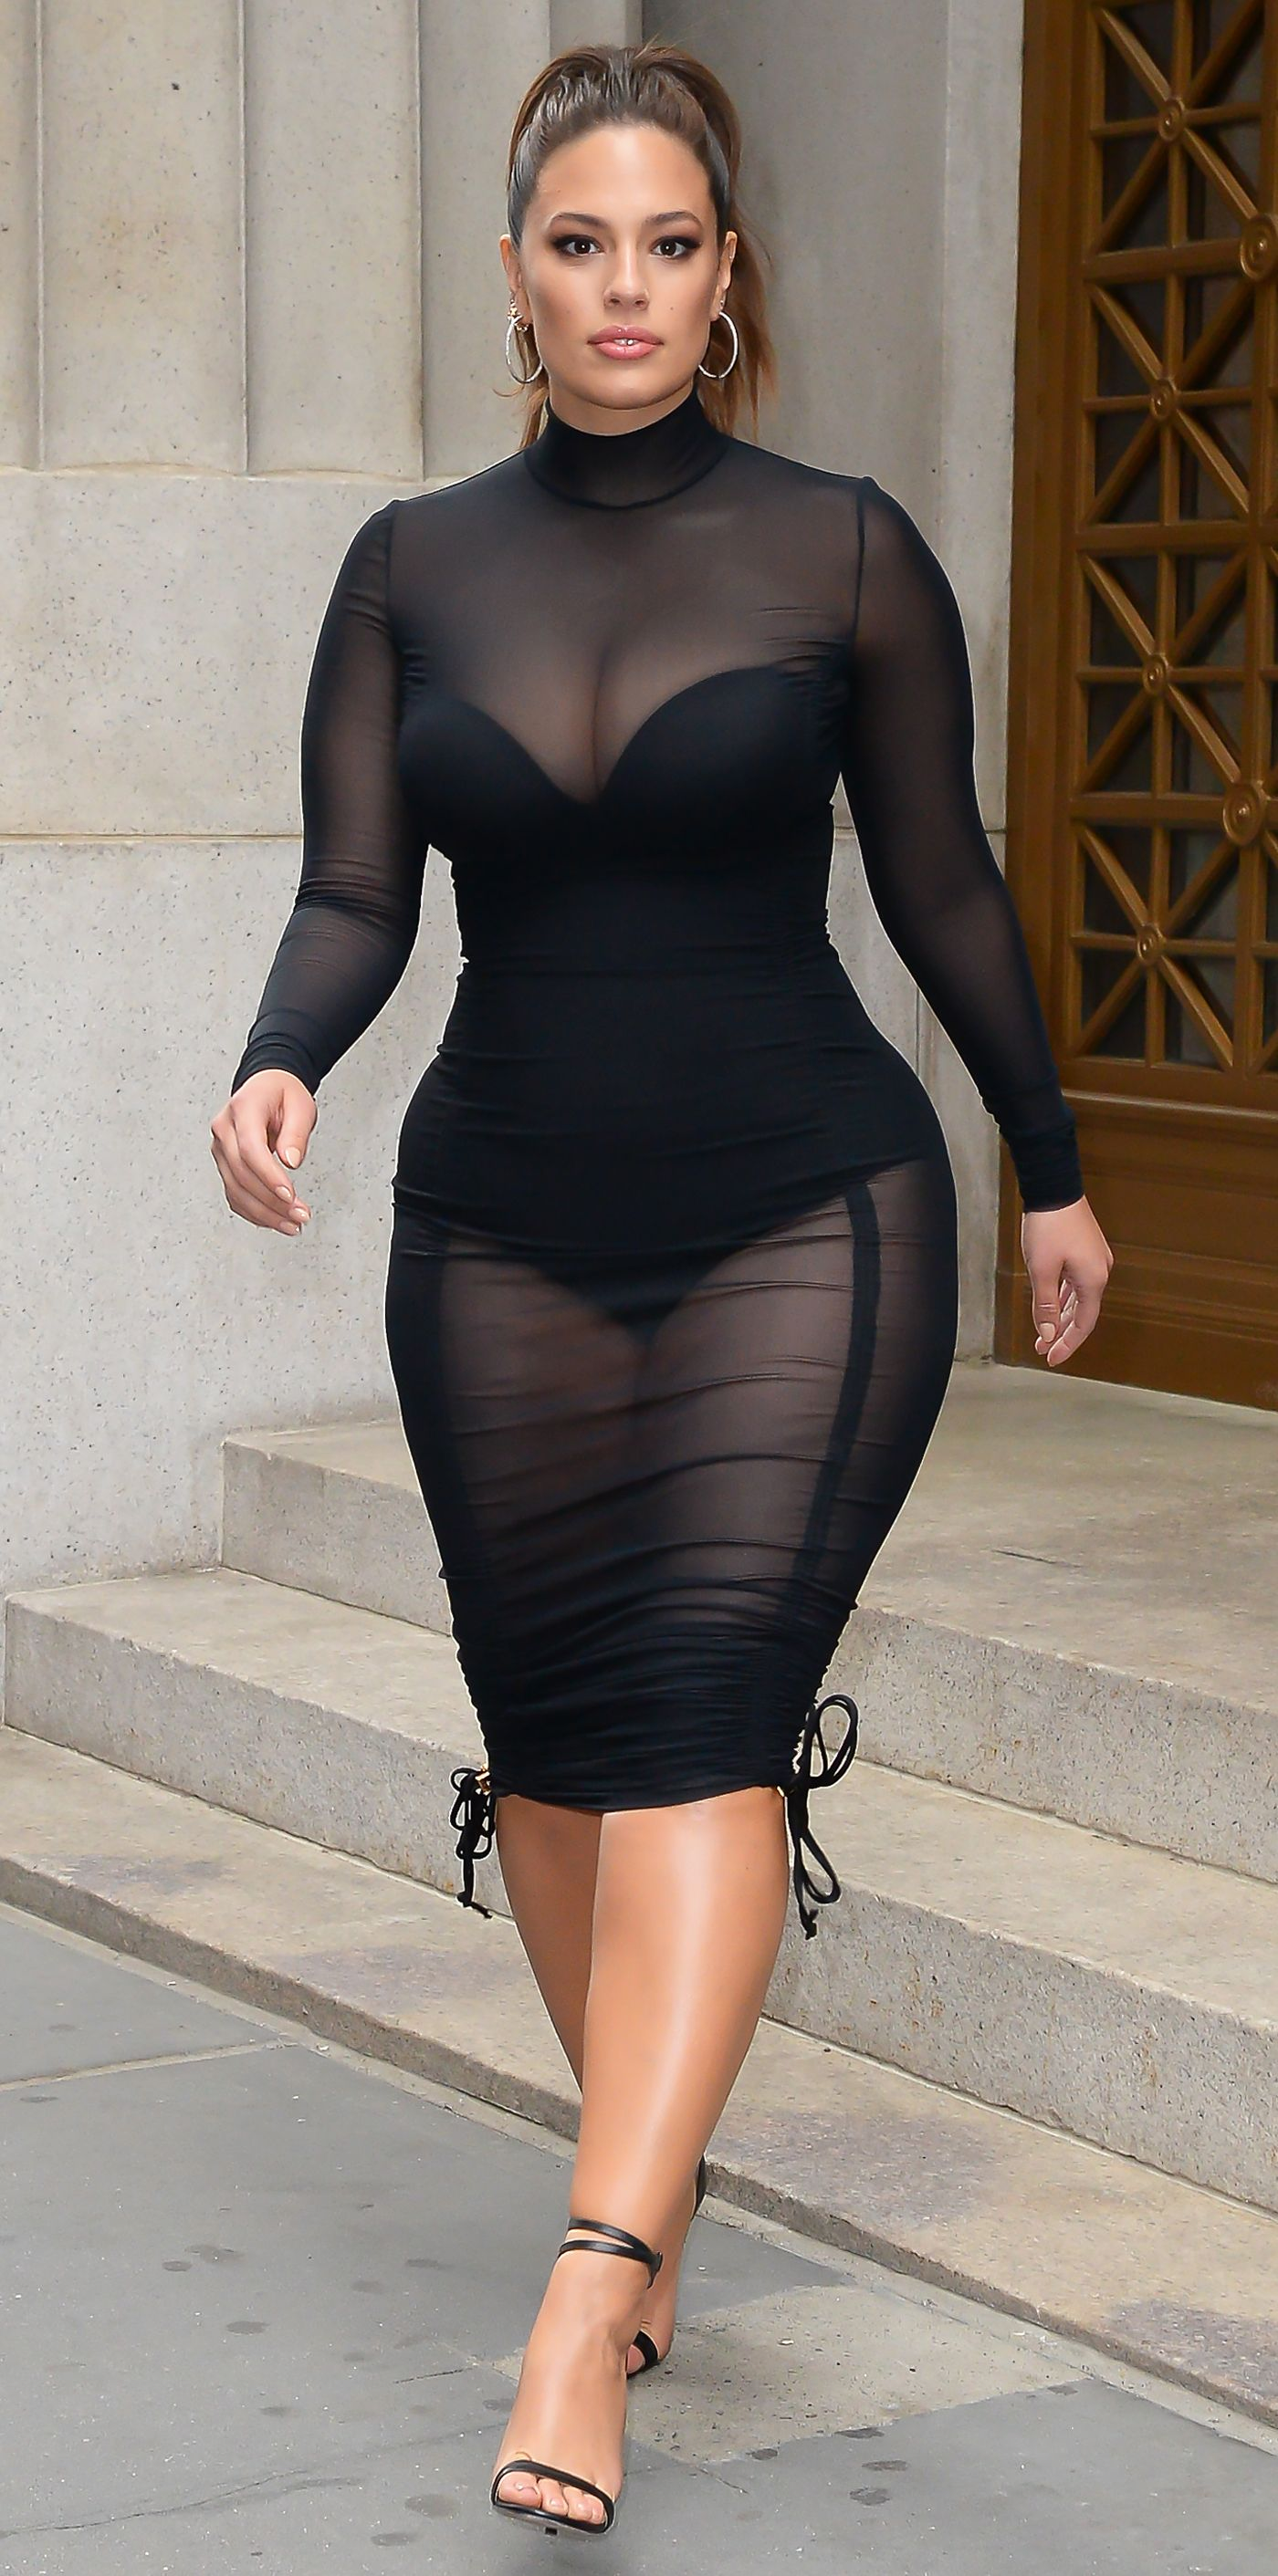 615f57afee5 Ashley Graham showed off her enviable curves in this sexy ensemble  a  bustier bodysuit layered under a skin tight sheer dress with ties at the  hem.